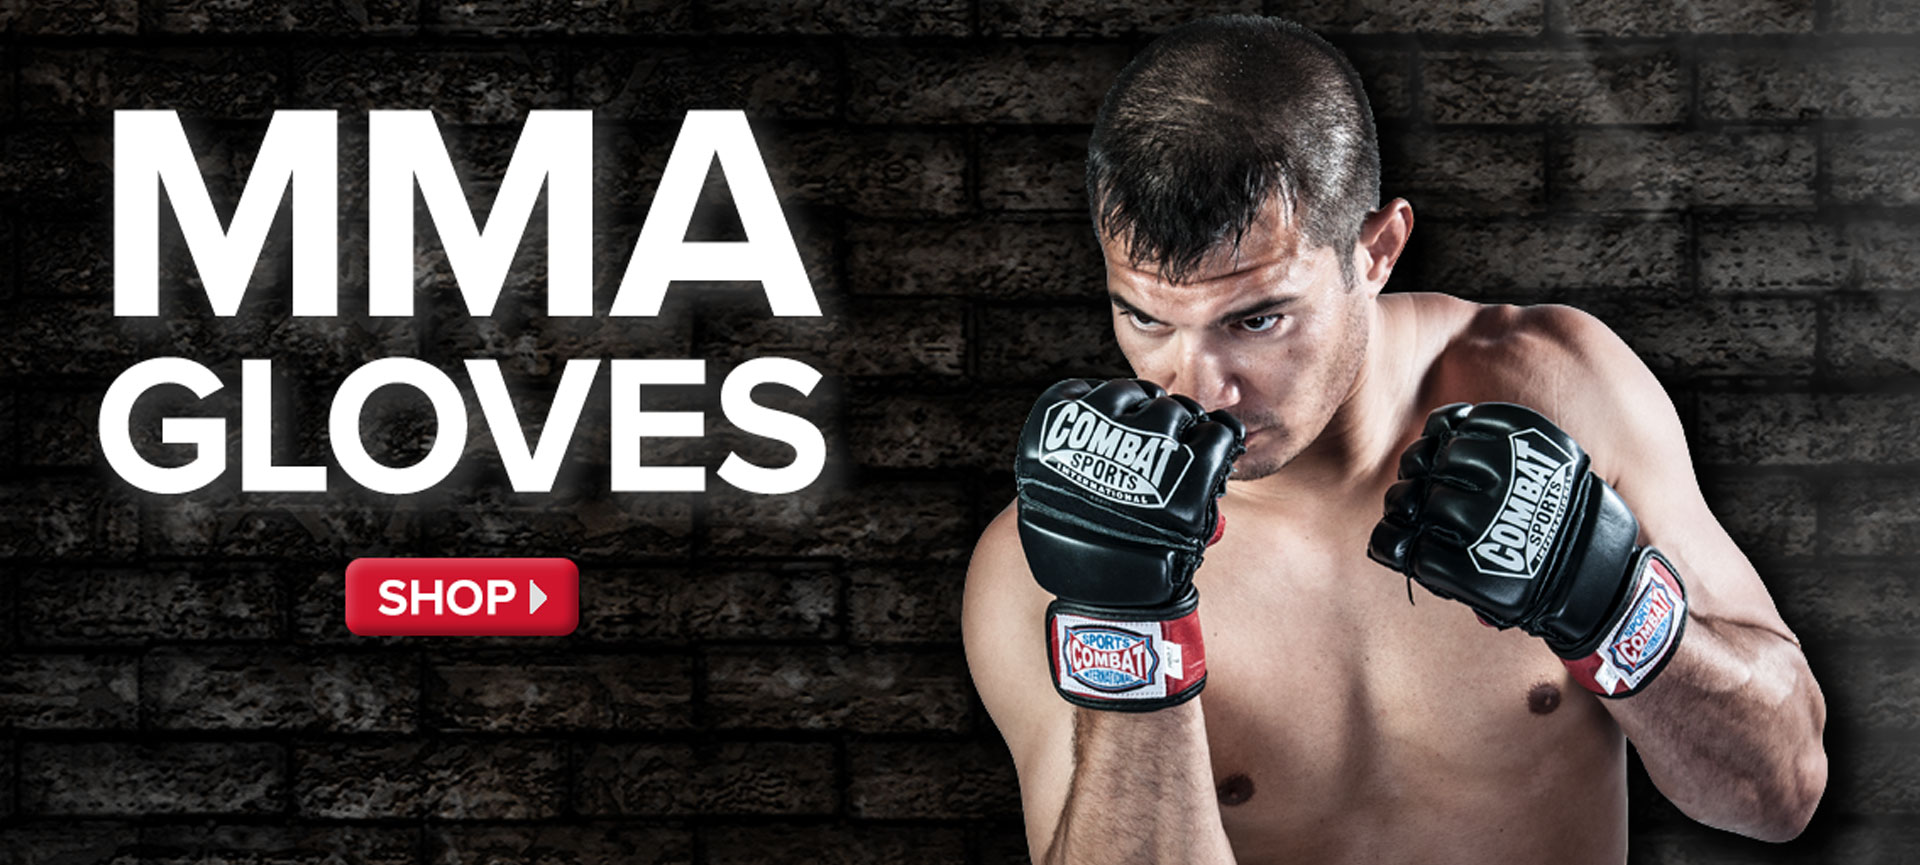 How to Become a Professional MMA Fighter – 5 Important Rules